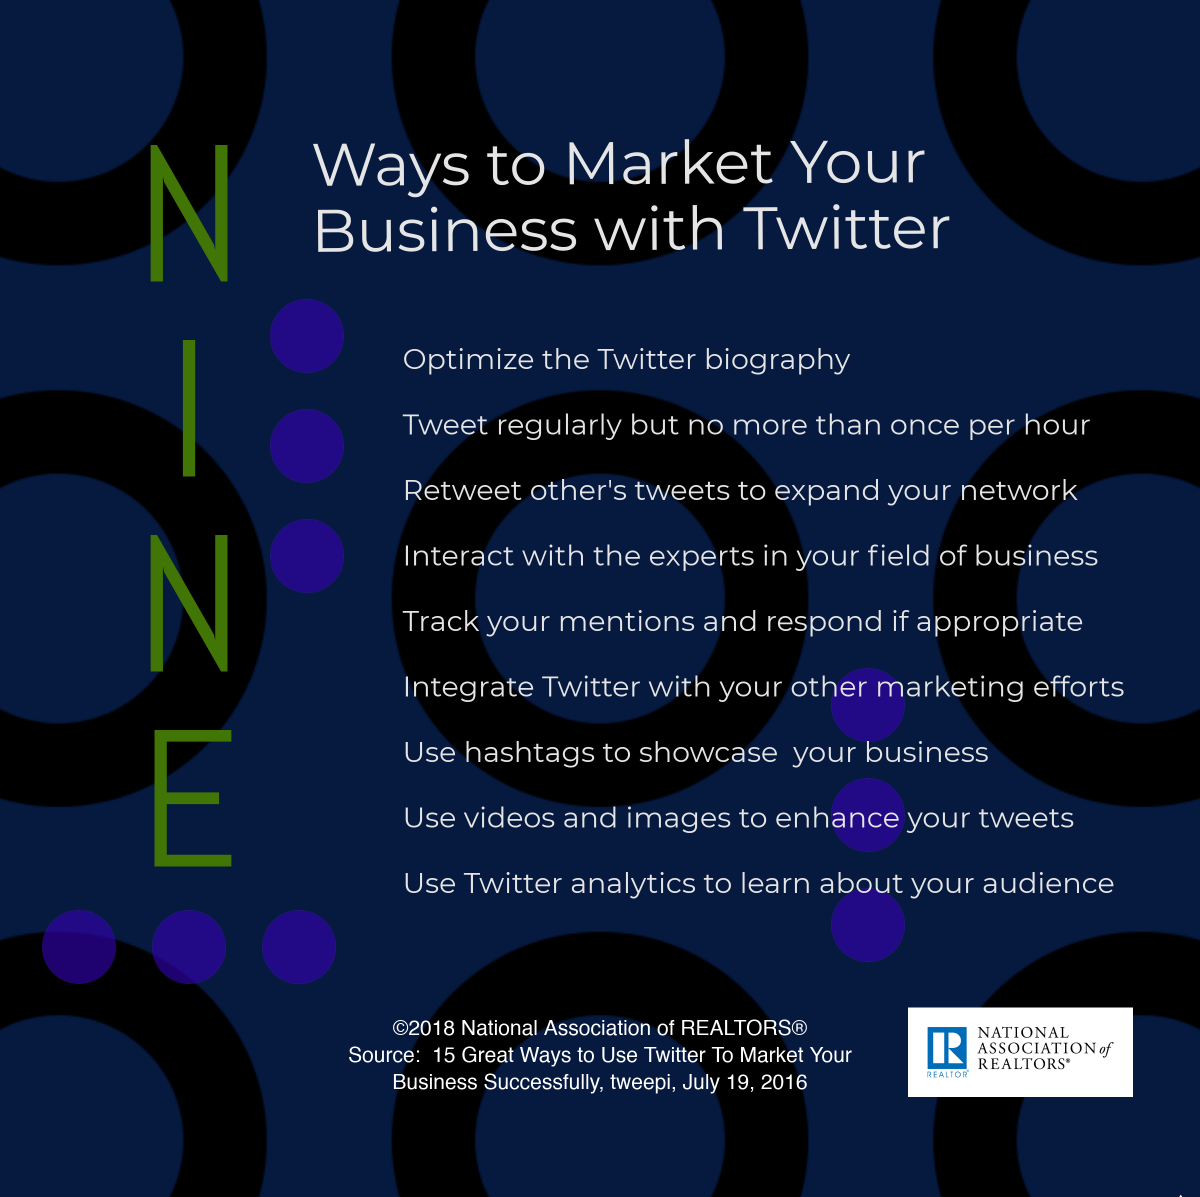 Ways to Market Your Business with Twitter